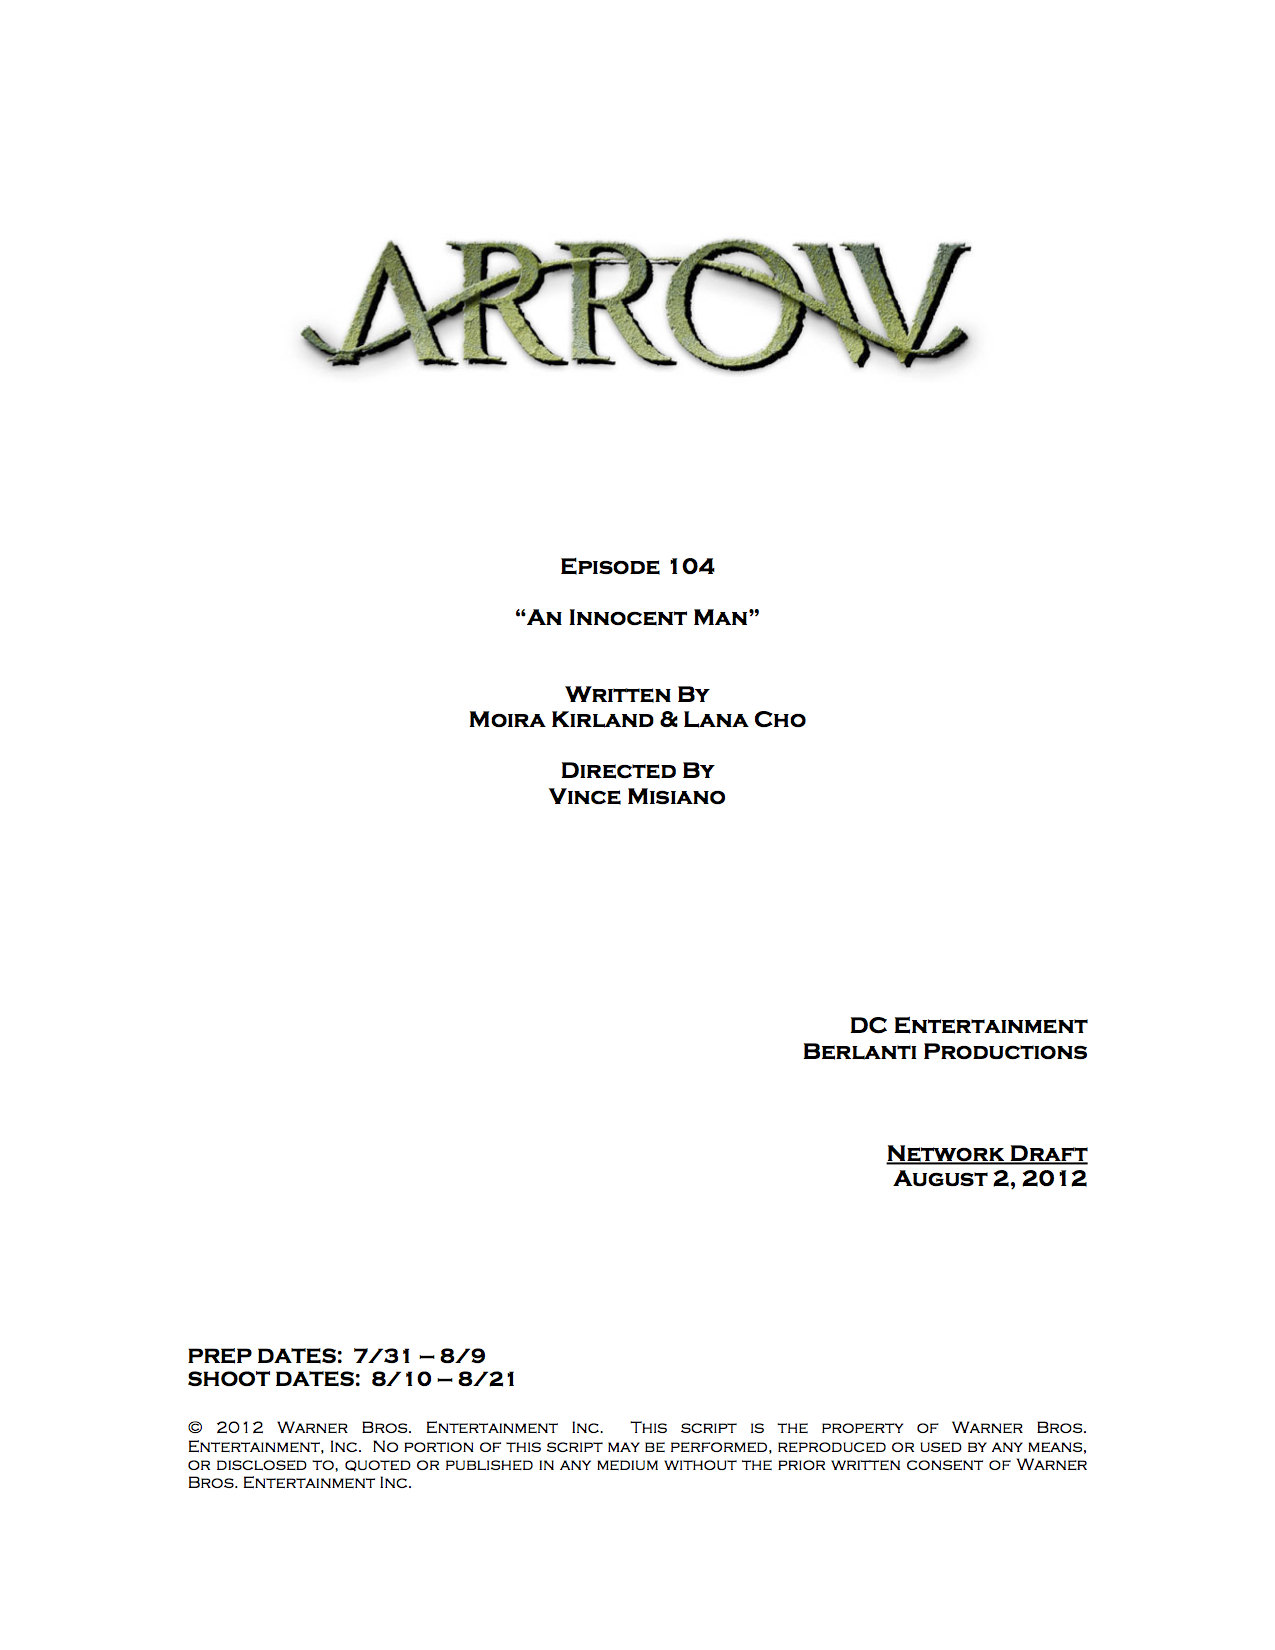 title page greenarrowtv arrow episode 4 title change cover page an innocent